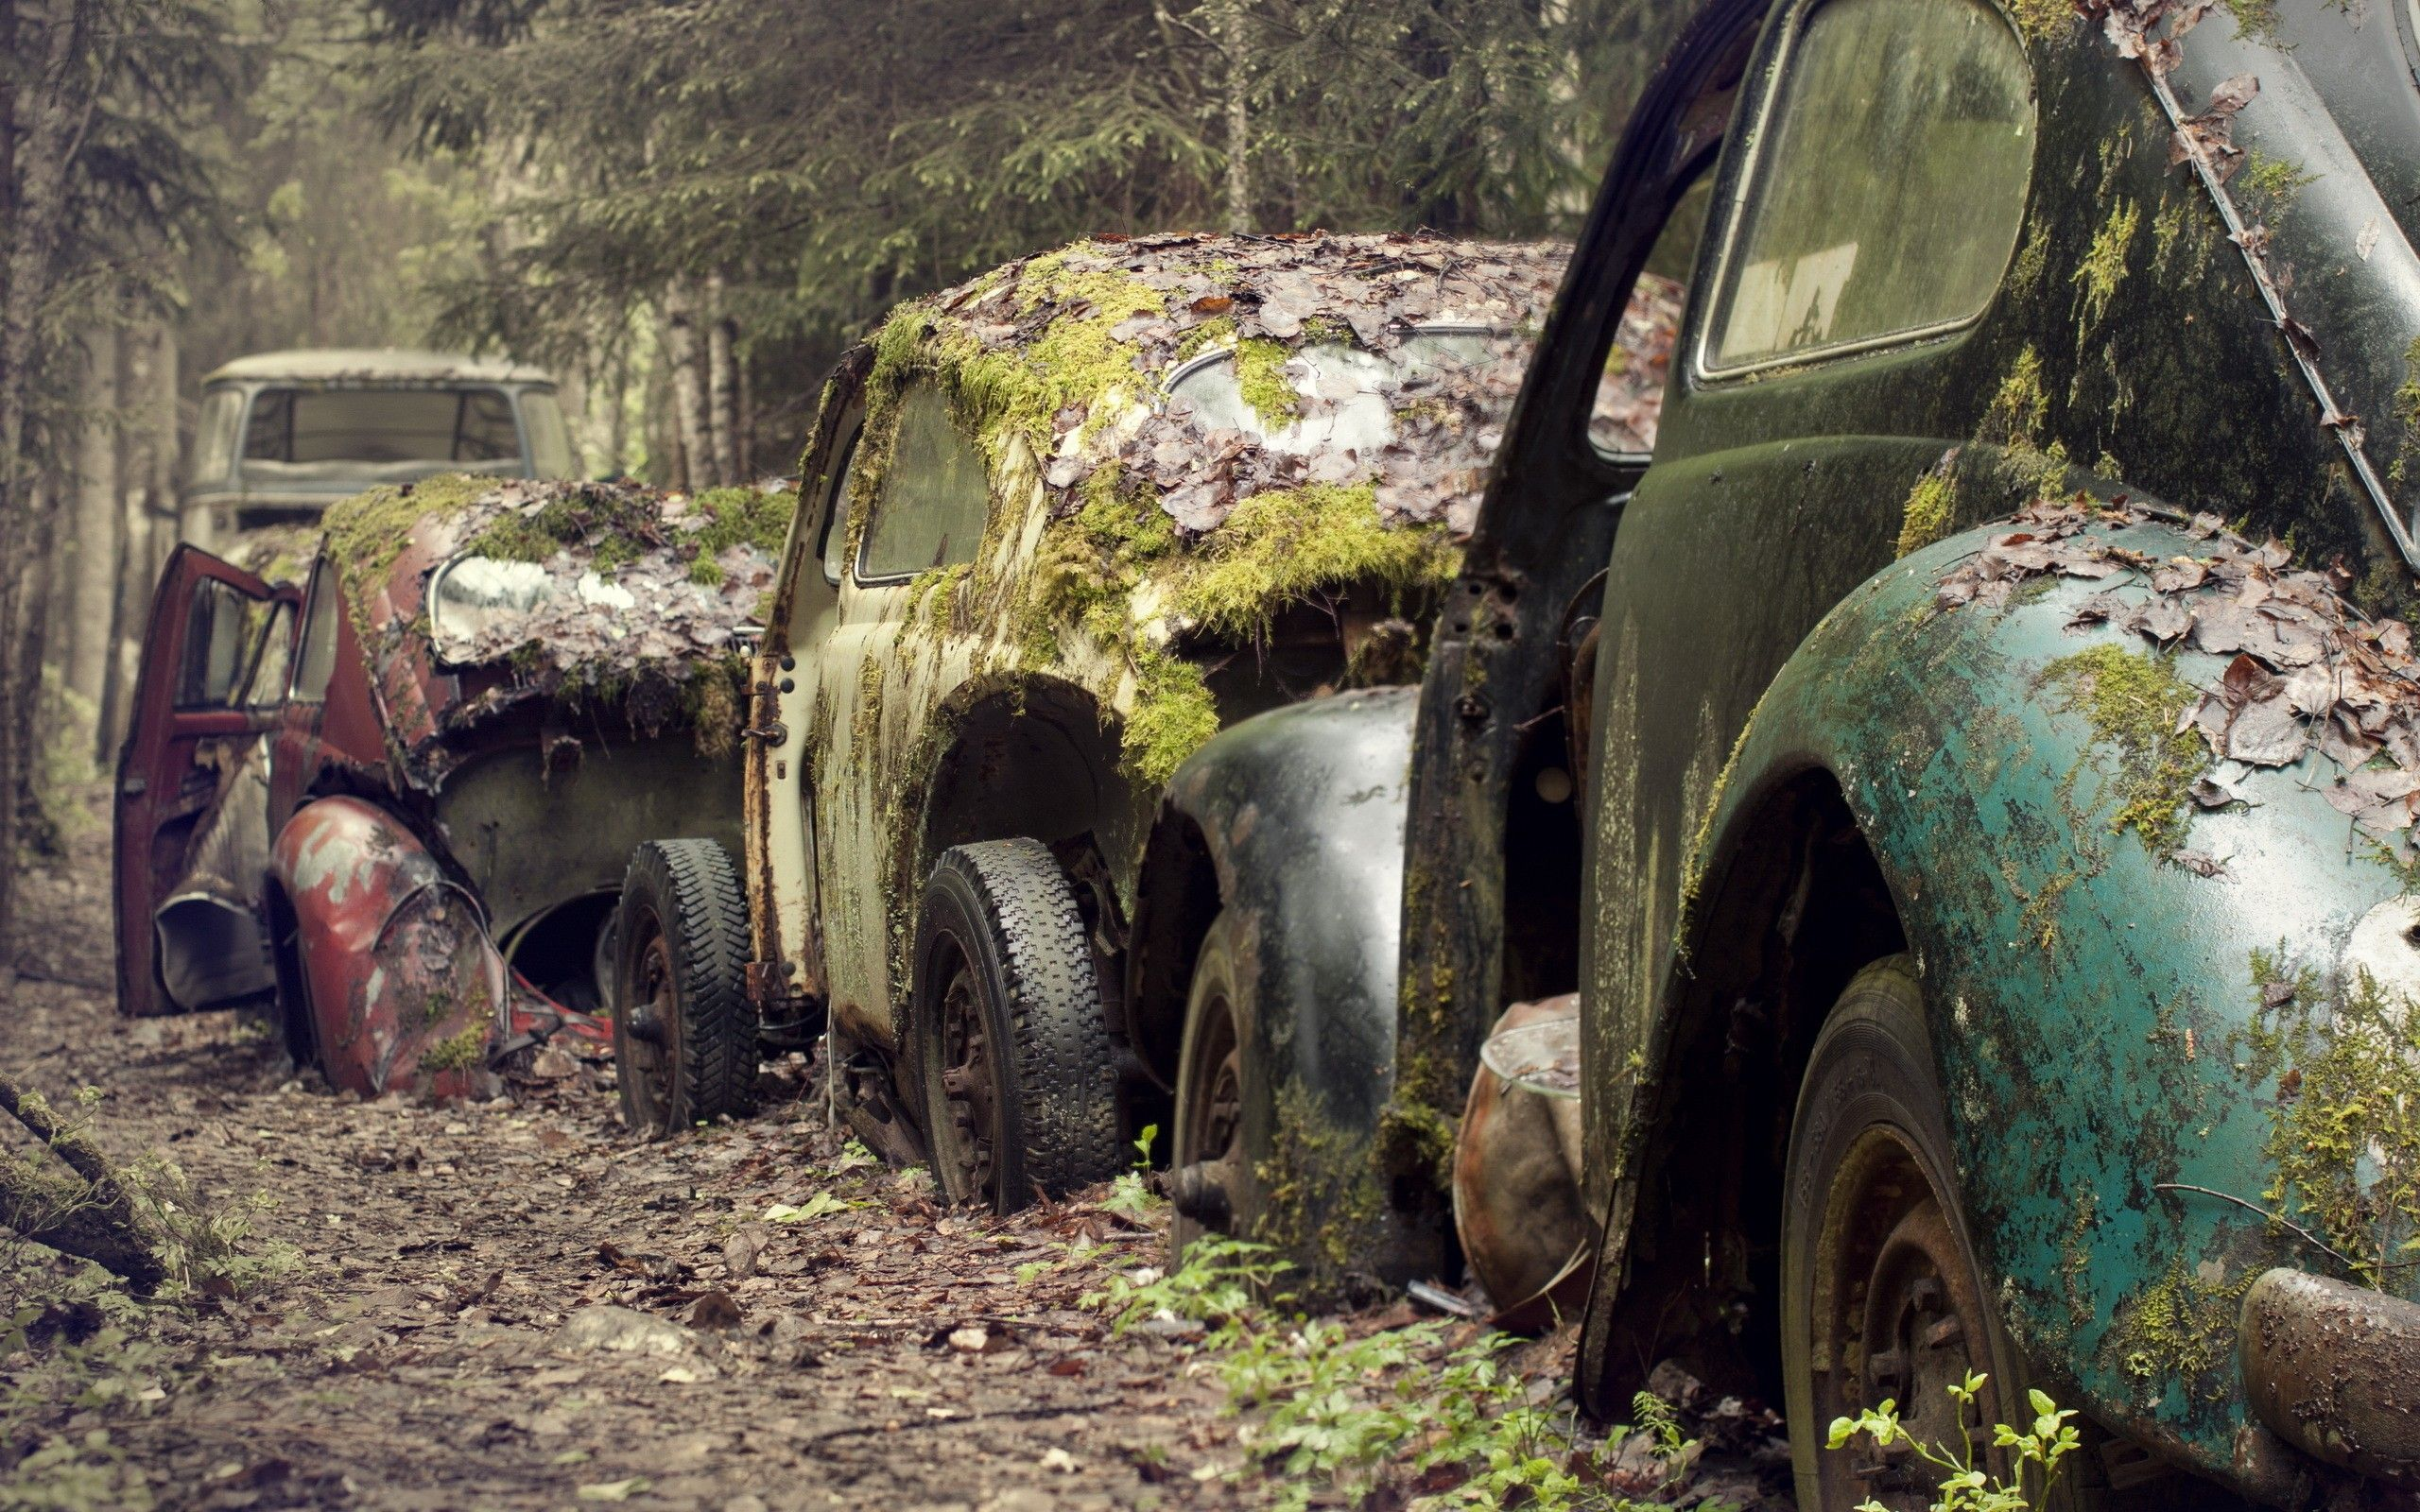 Vintage Old Cars Photography Moss Rusted Volkswagen Beetle Vintage Cars 2560x1600 Wallpaper Volkswagen Beetle Vintage Abandoned Cars Vintage Cars